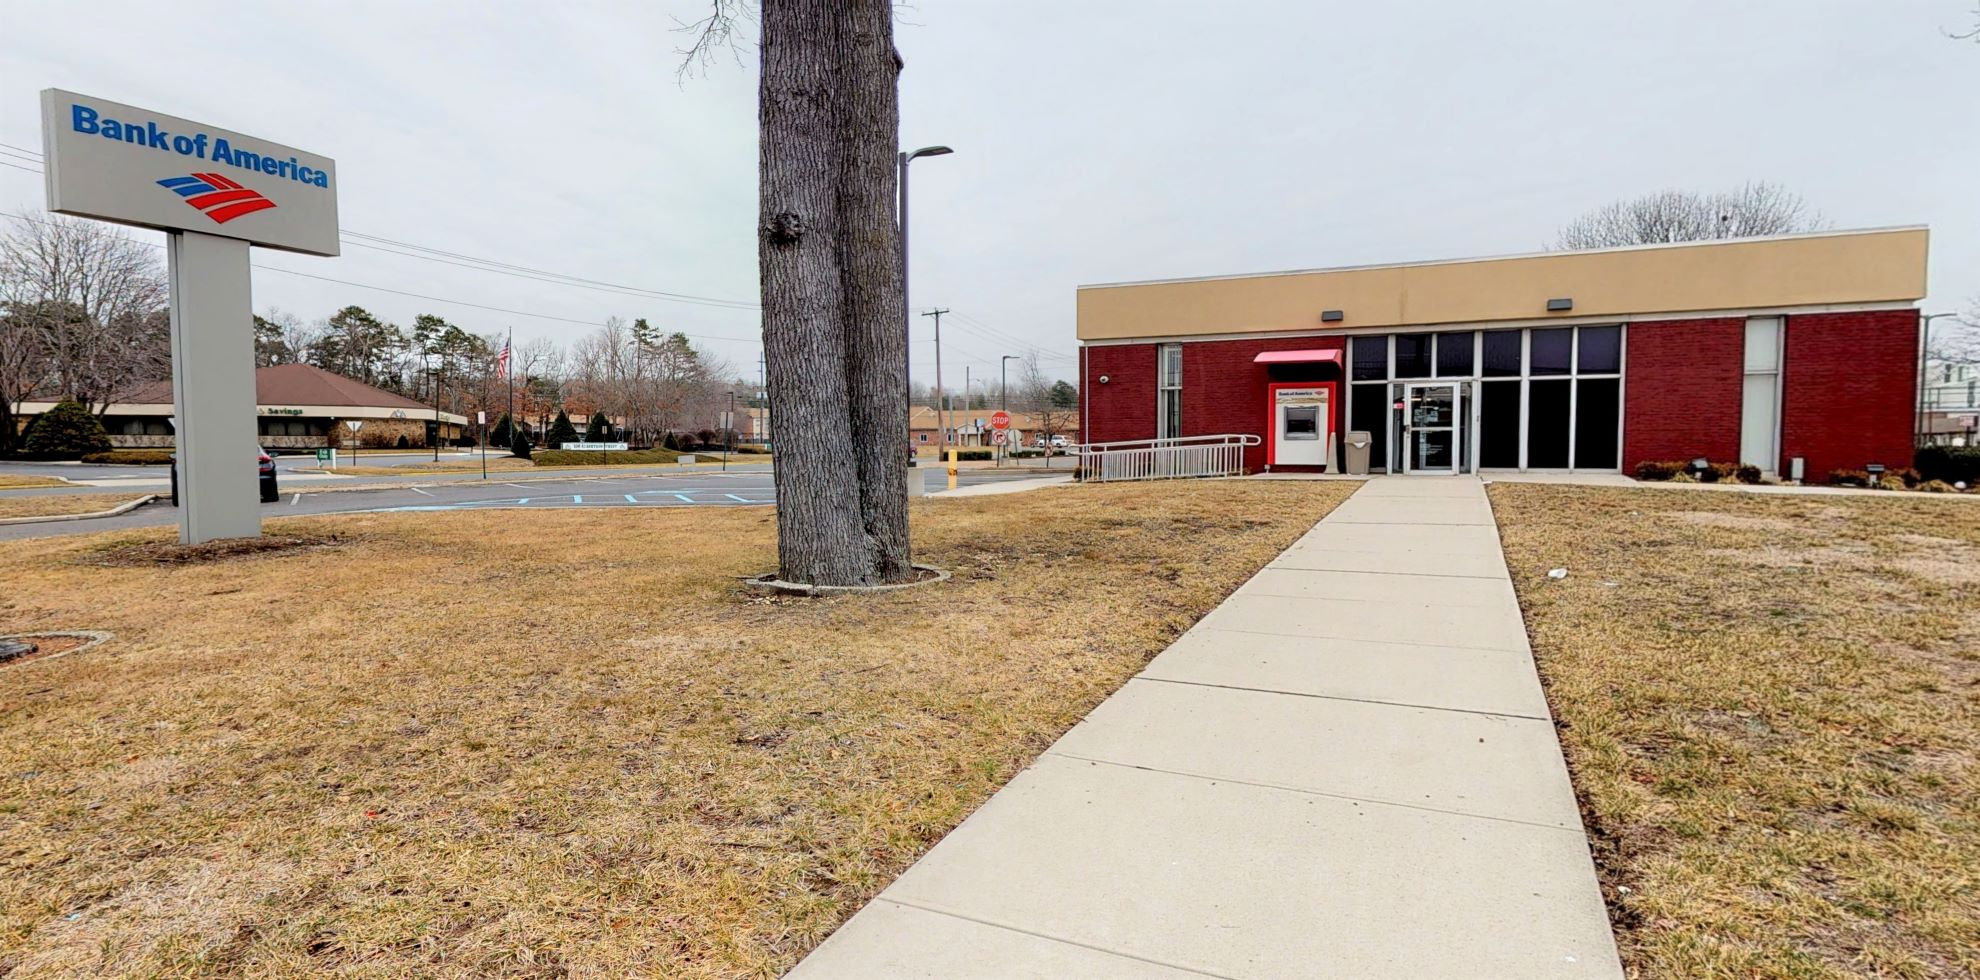 Bank of America financial center with drive-thru ATM   1709 N High St, Millville, NJ 08332